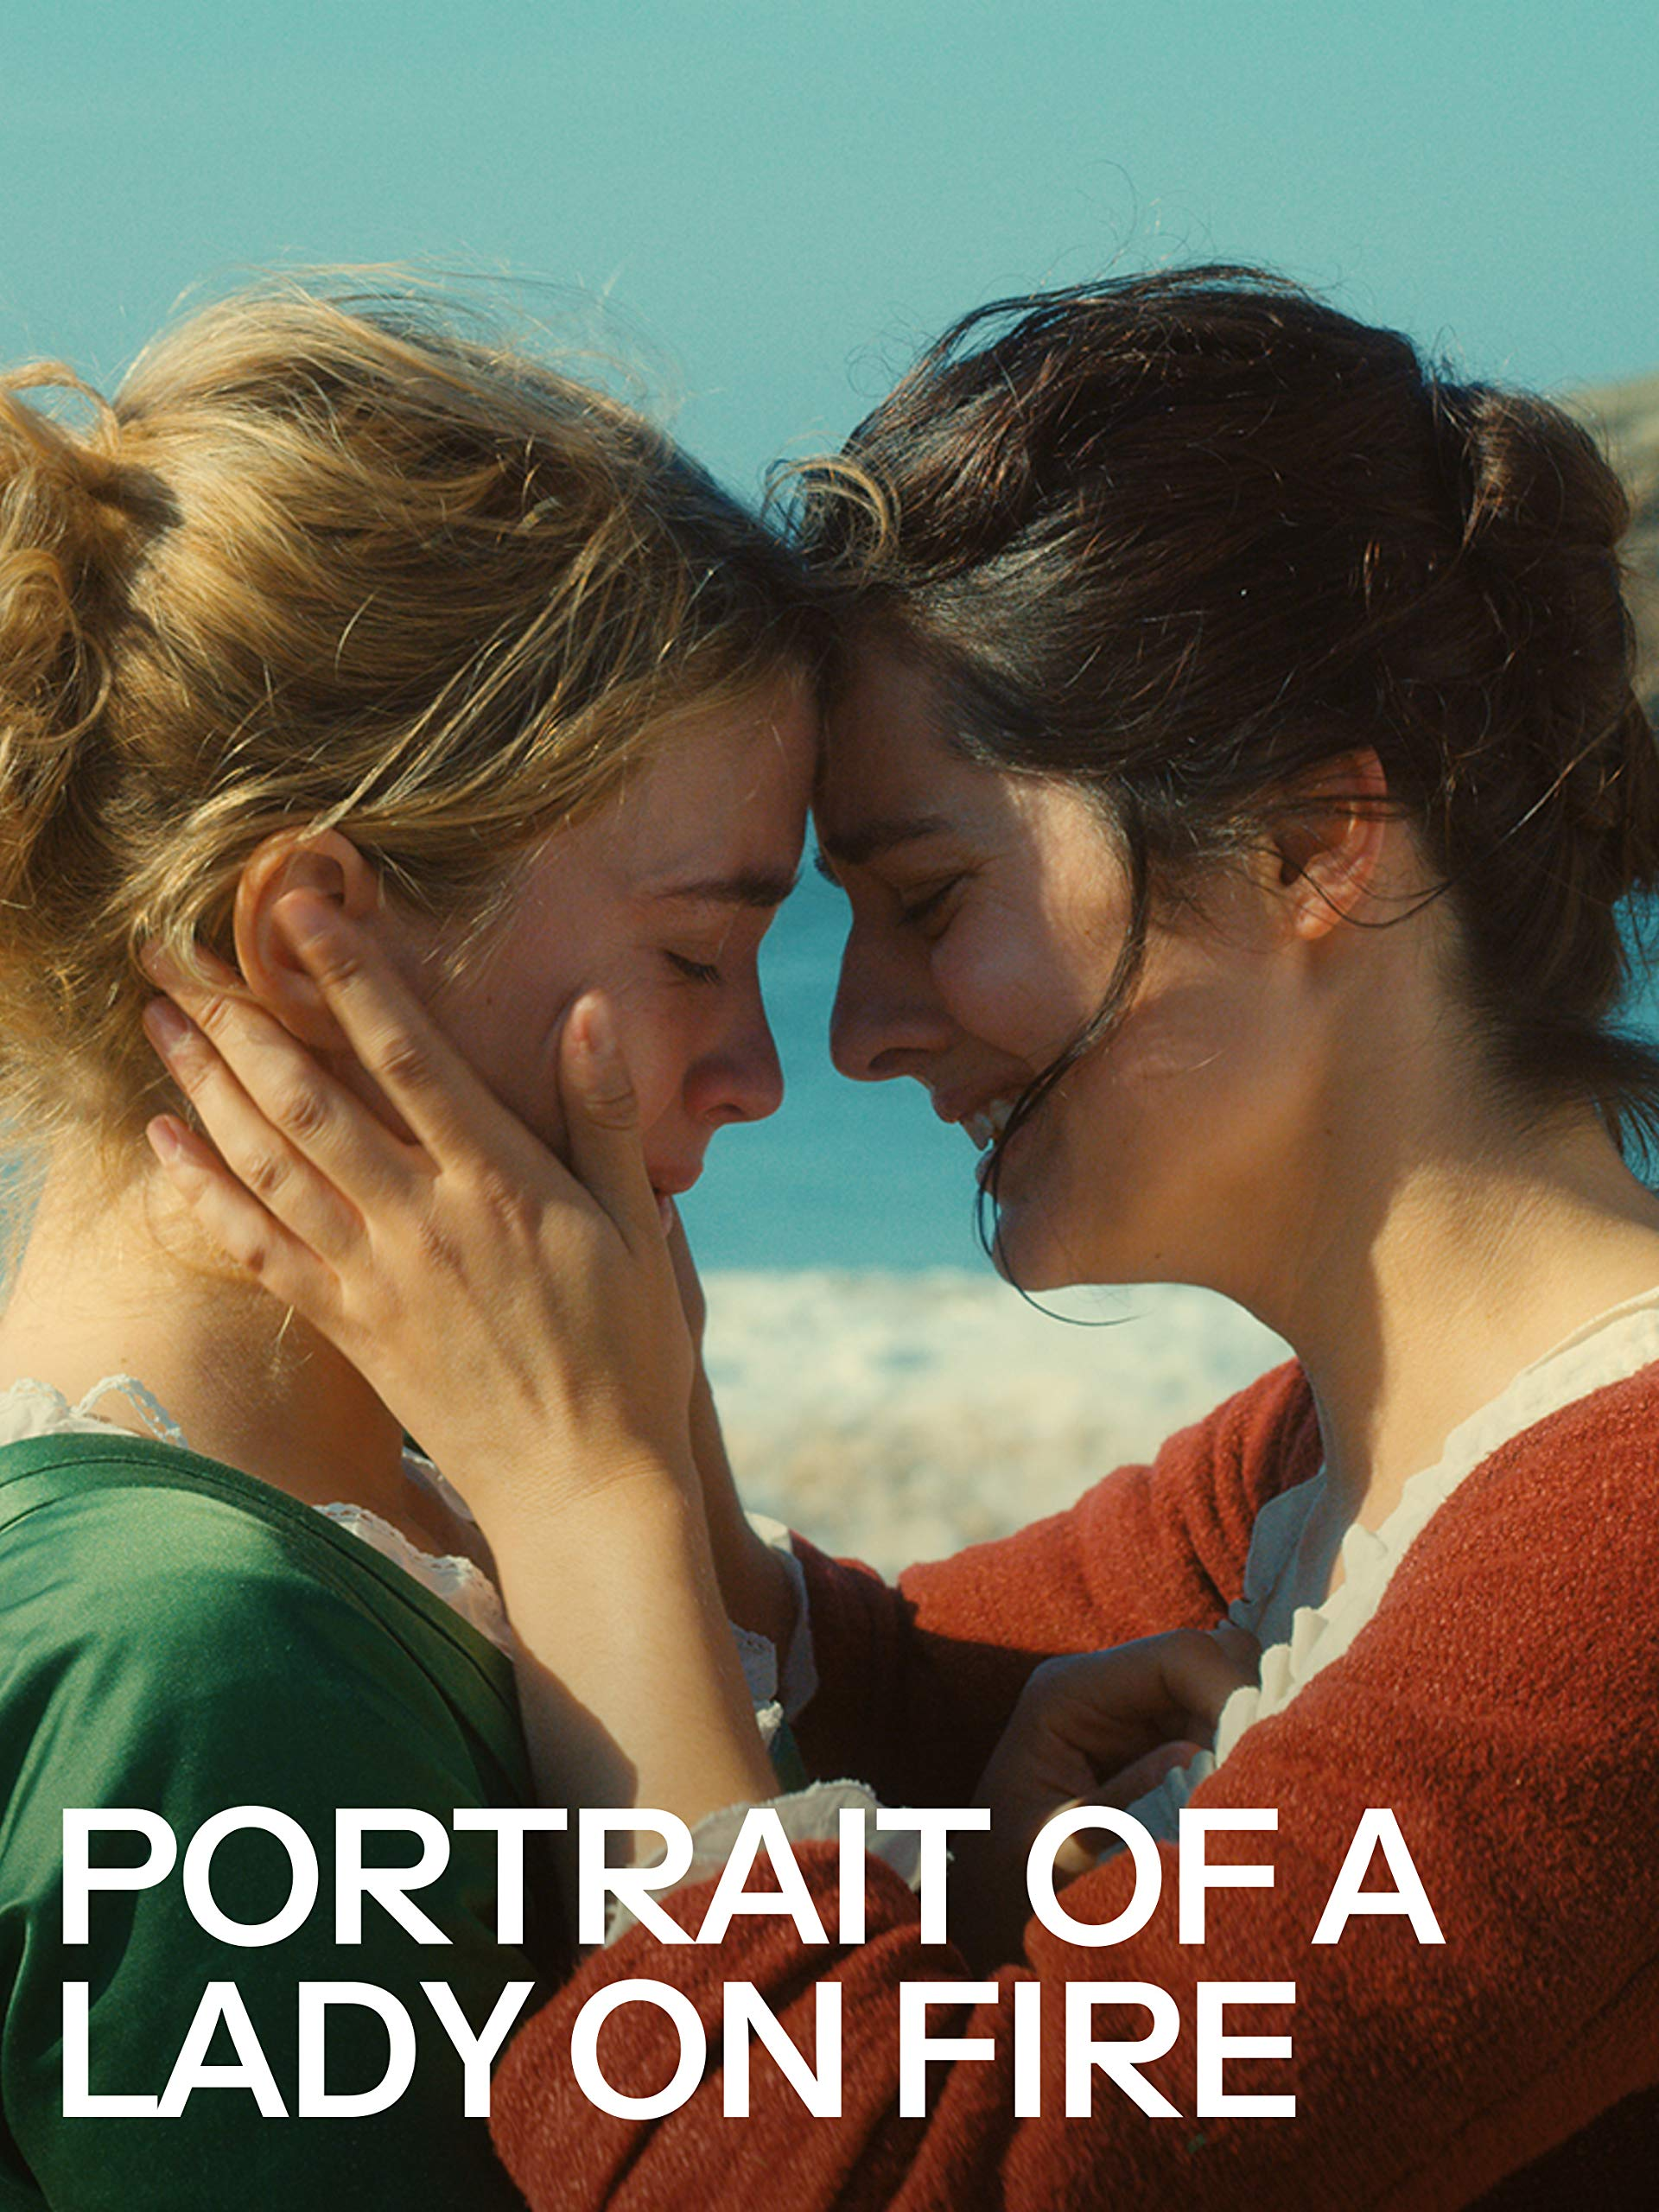 Watch Portrait Of A Lady On Fire Prime Video Putlocker is the best site to watch movies online free. watch portrait of a lady on fire